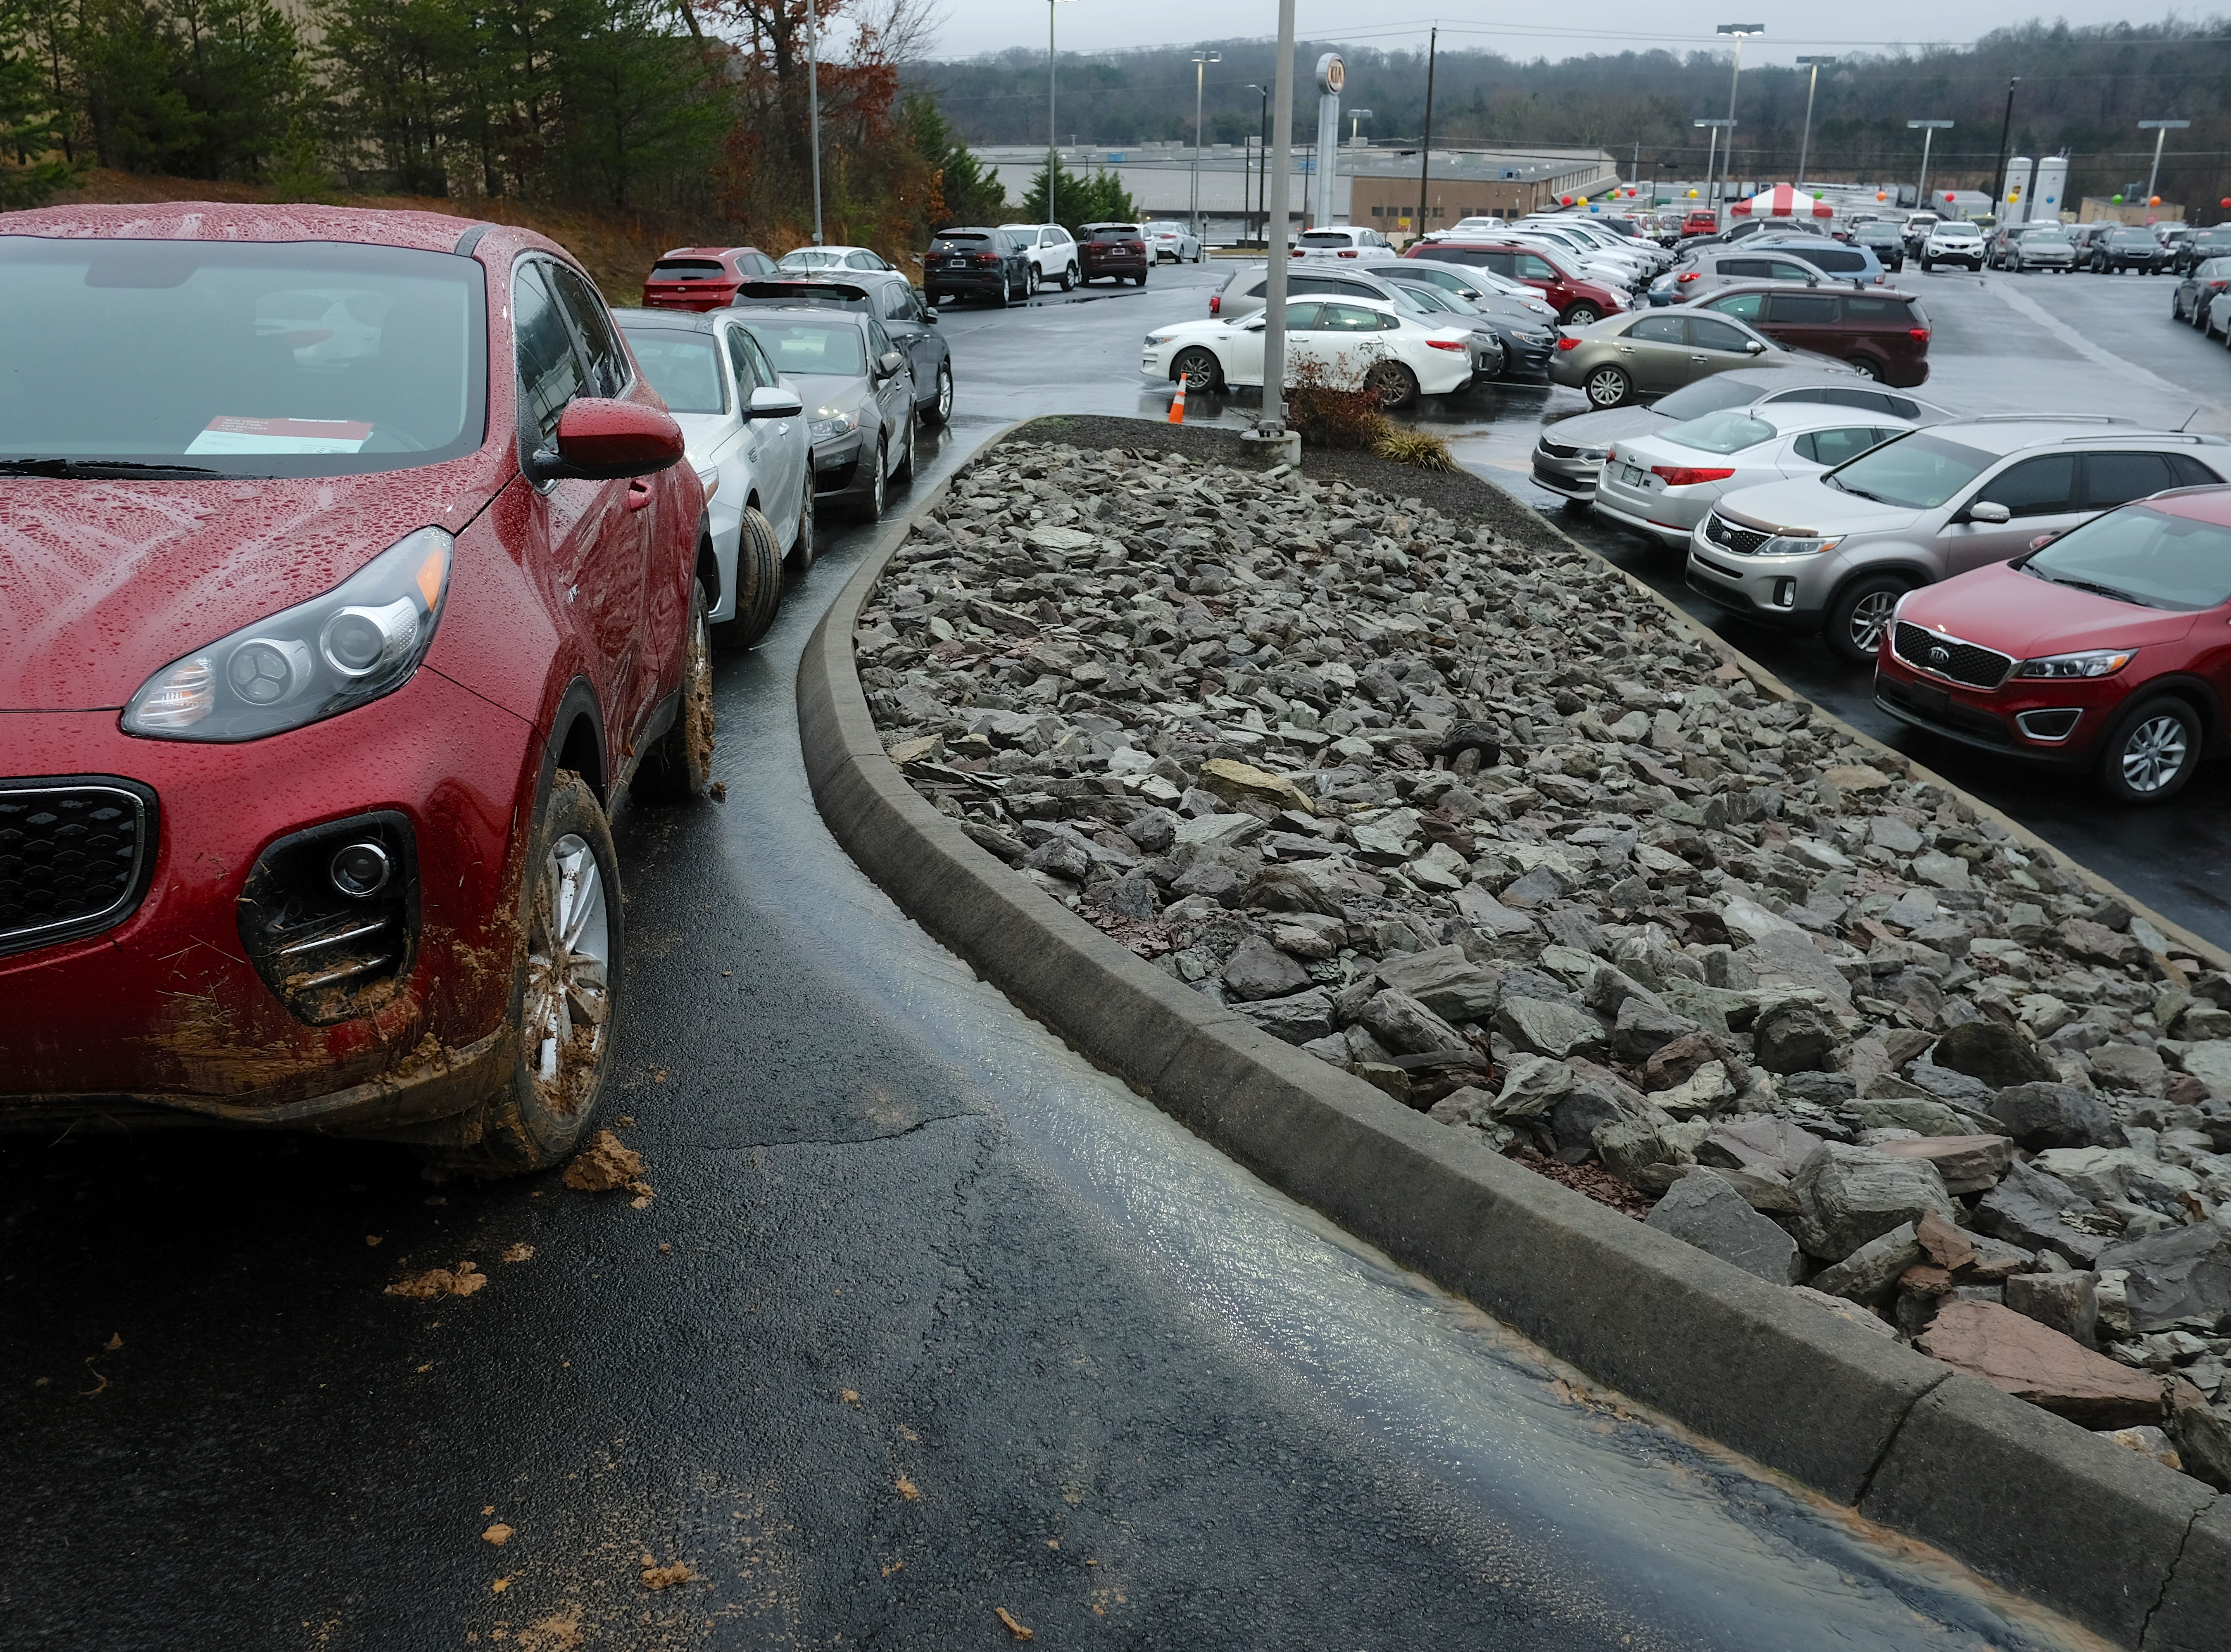 Car damage is visible from a mudslide that happened at Rusty Wallace Kia of Knoxville on Saturday, February 23, 2019, in Knoxville, Tenn. General manager Jake Bull reports an estimated damage of 30 new vehicles at his lot due to the mudslide.